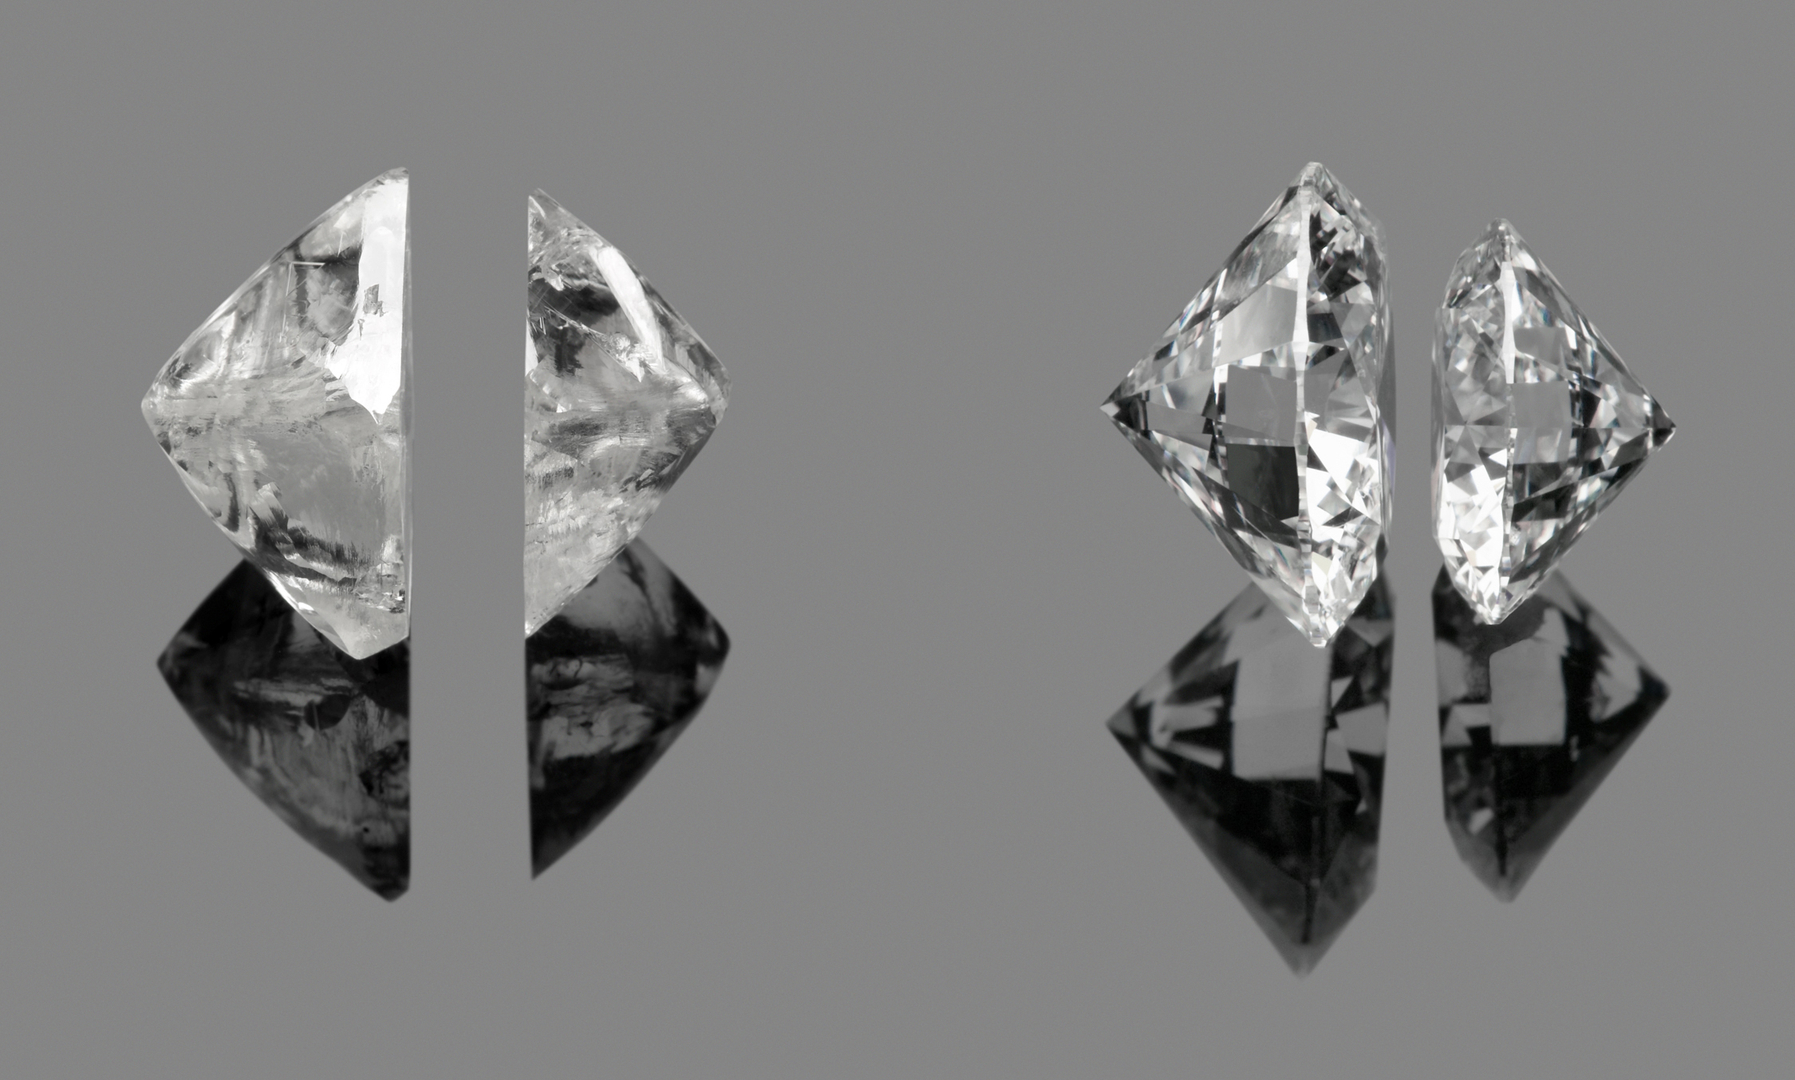 diamond expensive cnn s most polished style joseph for pictures world index article goes lau